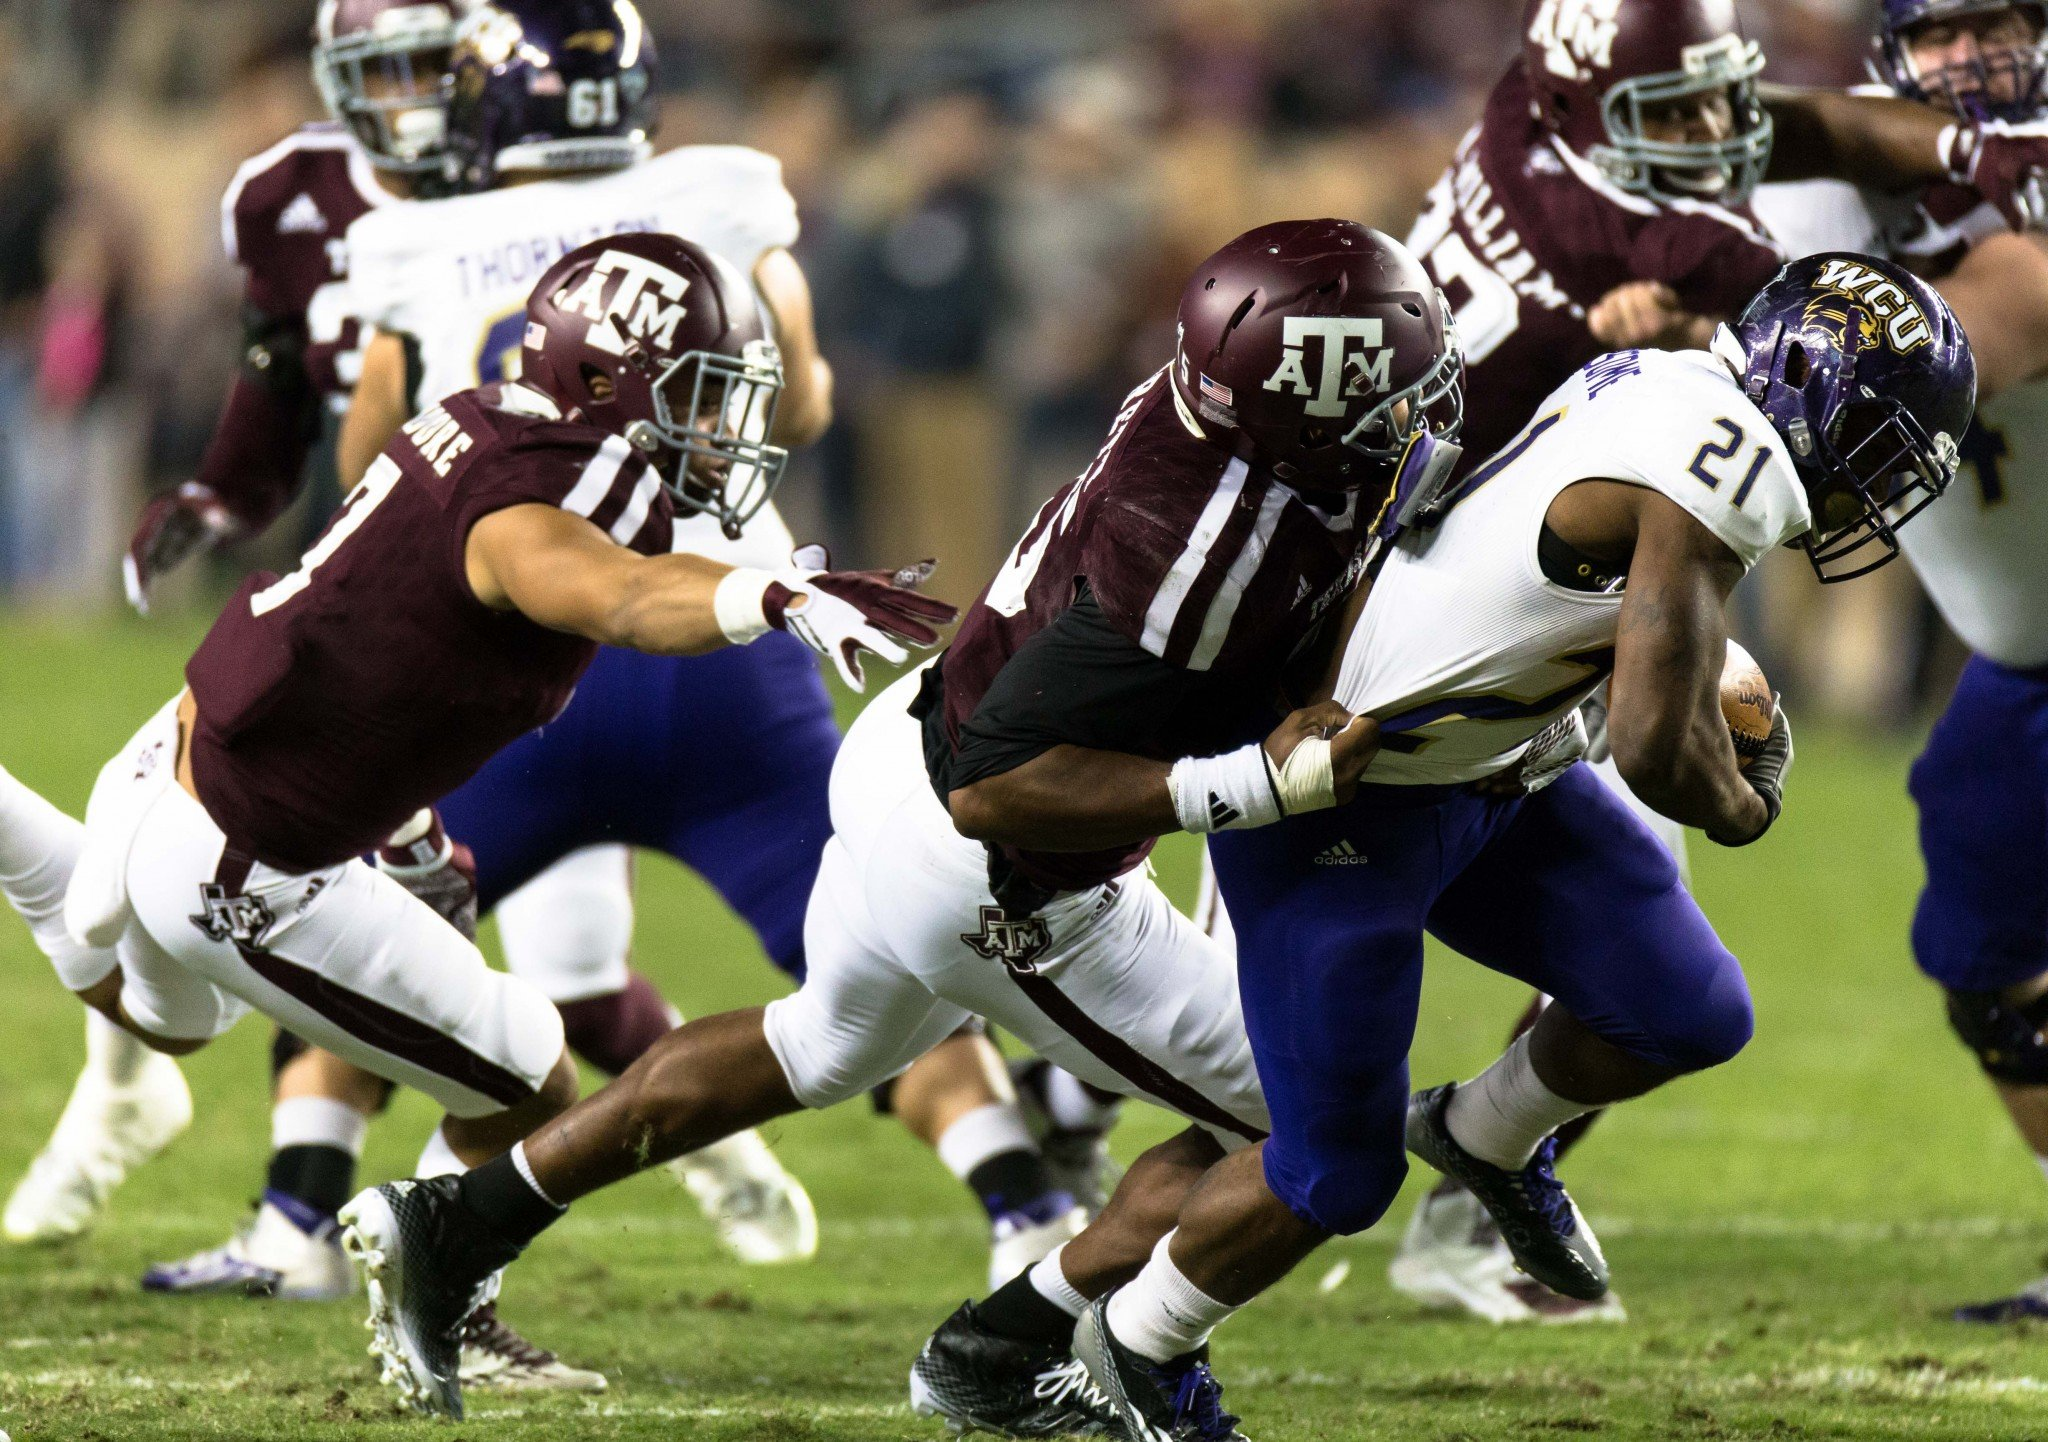 Texas A&M's Myles Garrett could be the first pick in the draft. (AP Photo/Juan DeLeon)